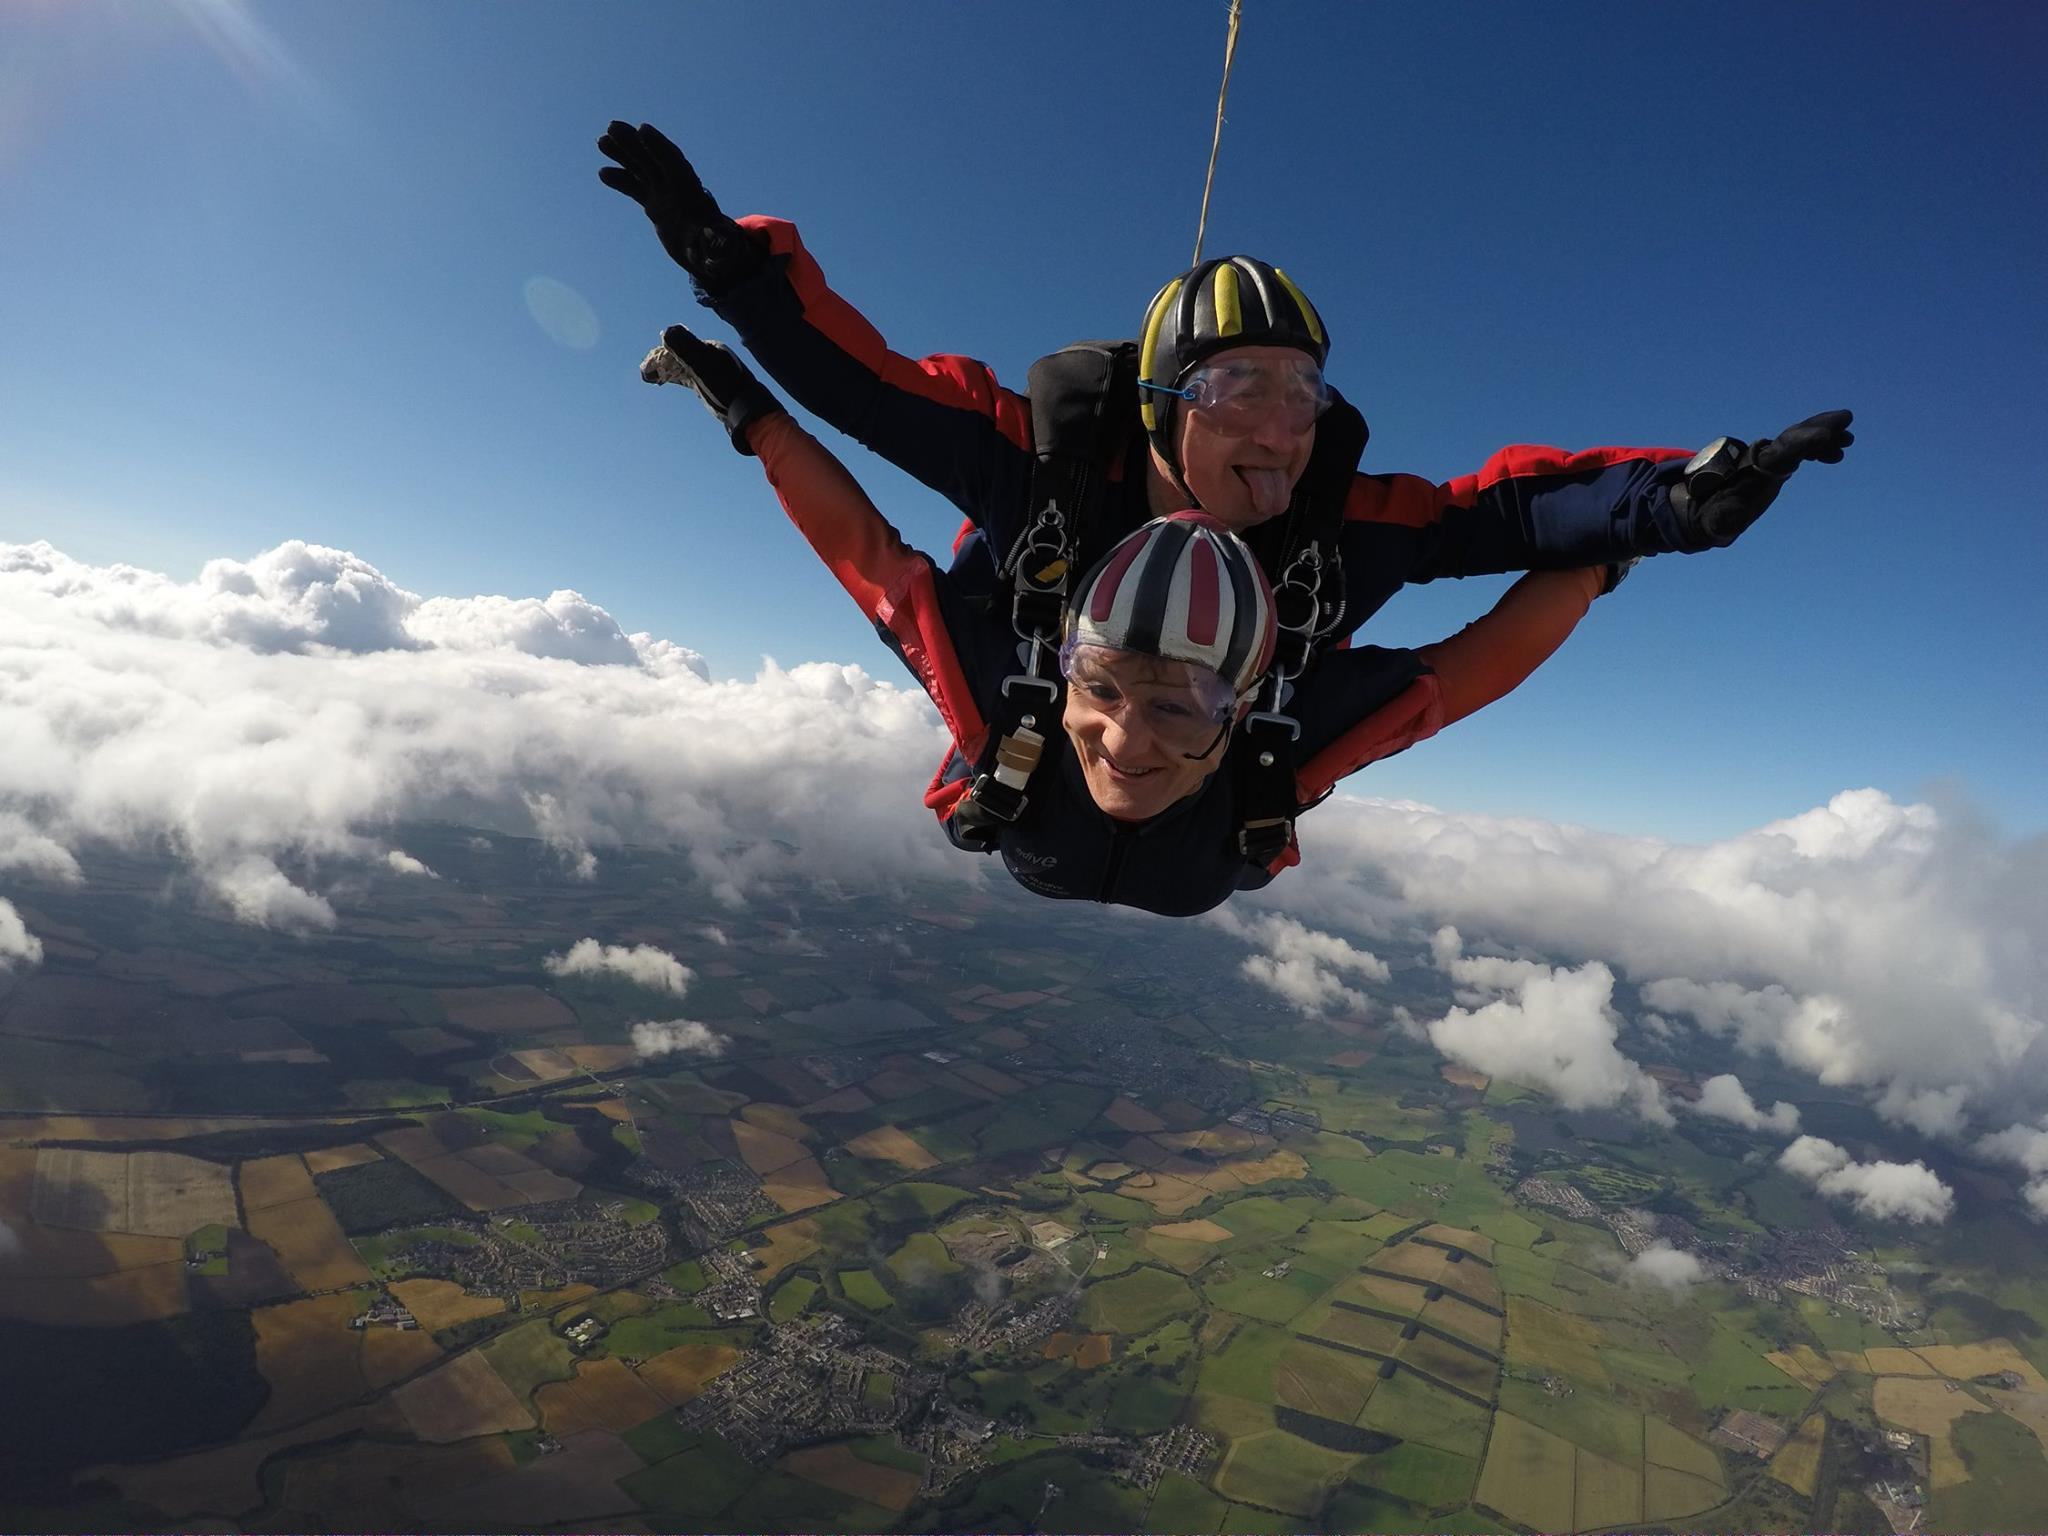 Sponsored Skydive For Stonewall Scotland